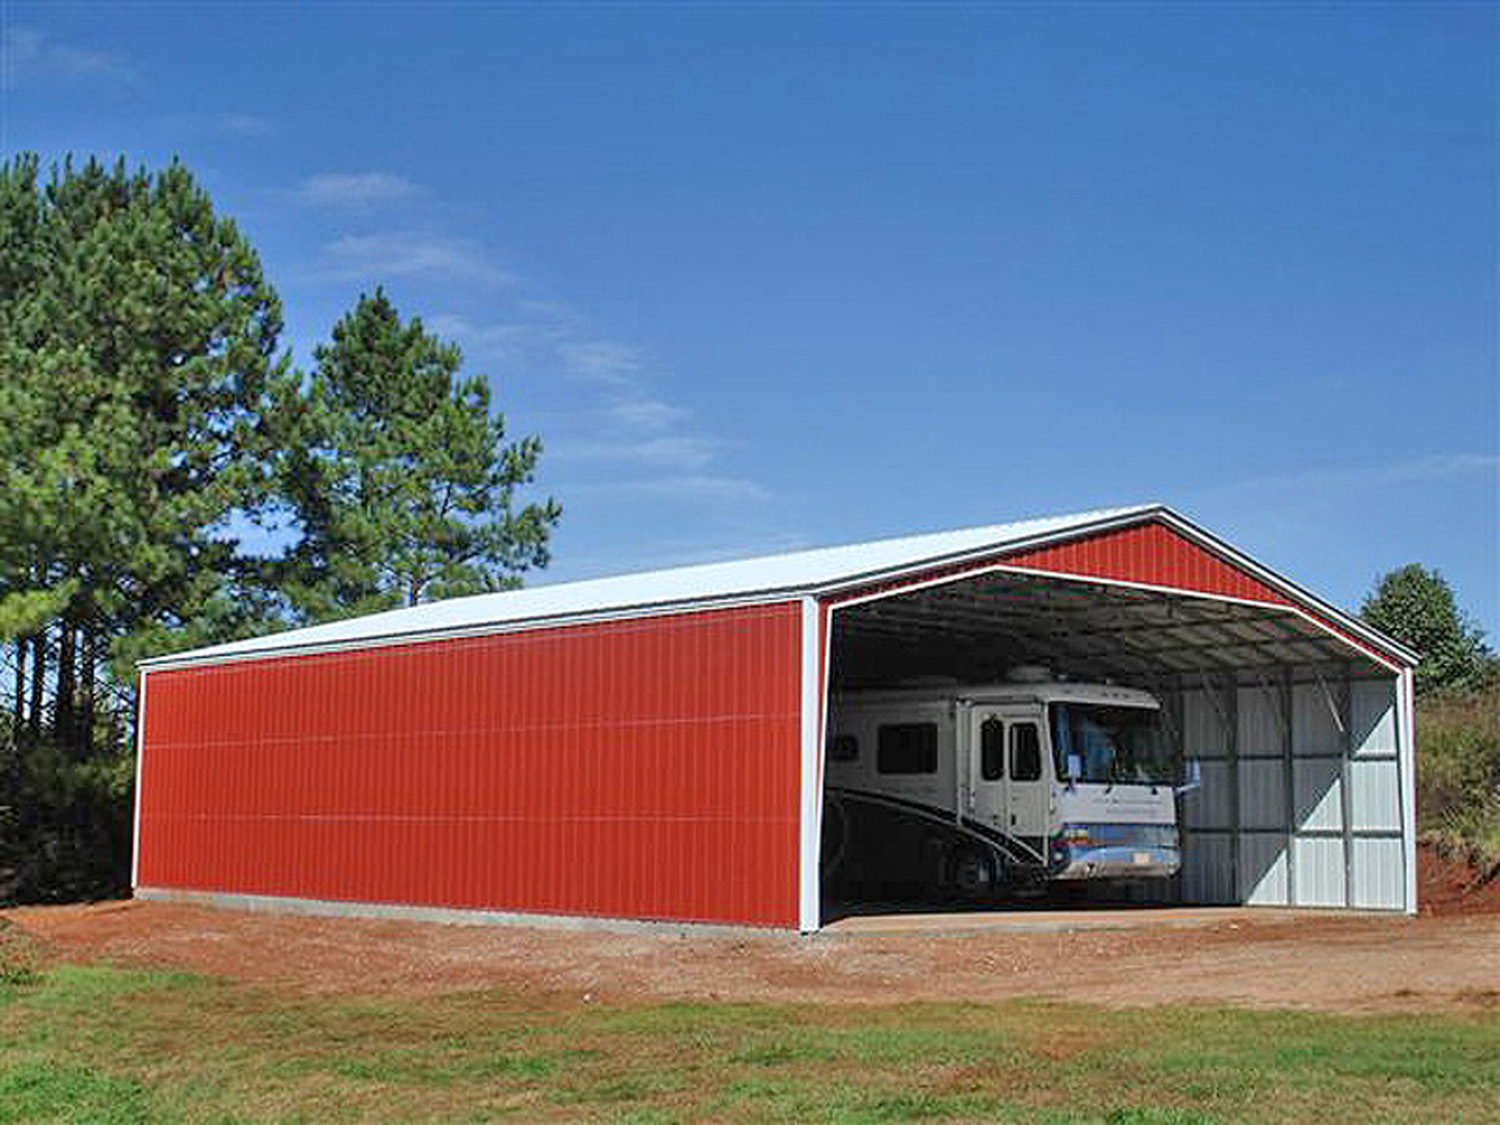 Rv storage buildings metal rv shelters rv carports for Garage and carport